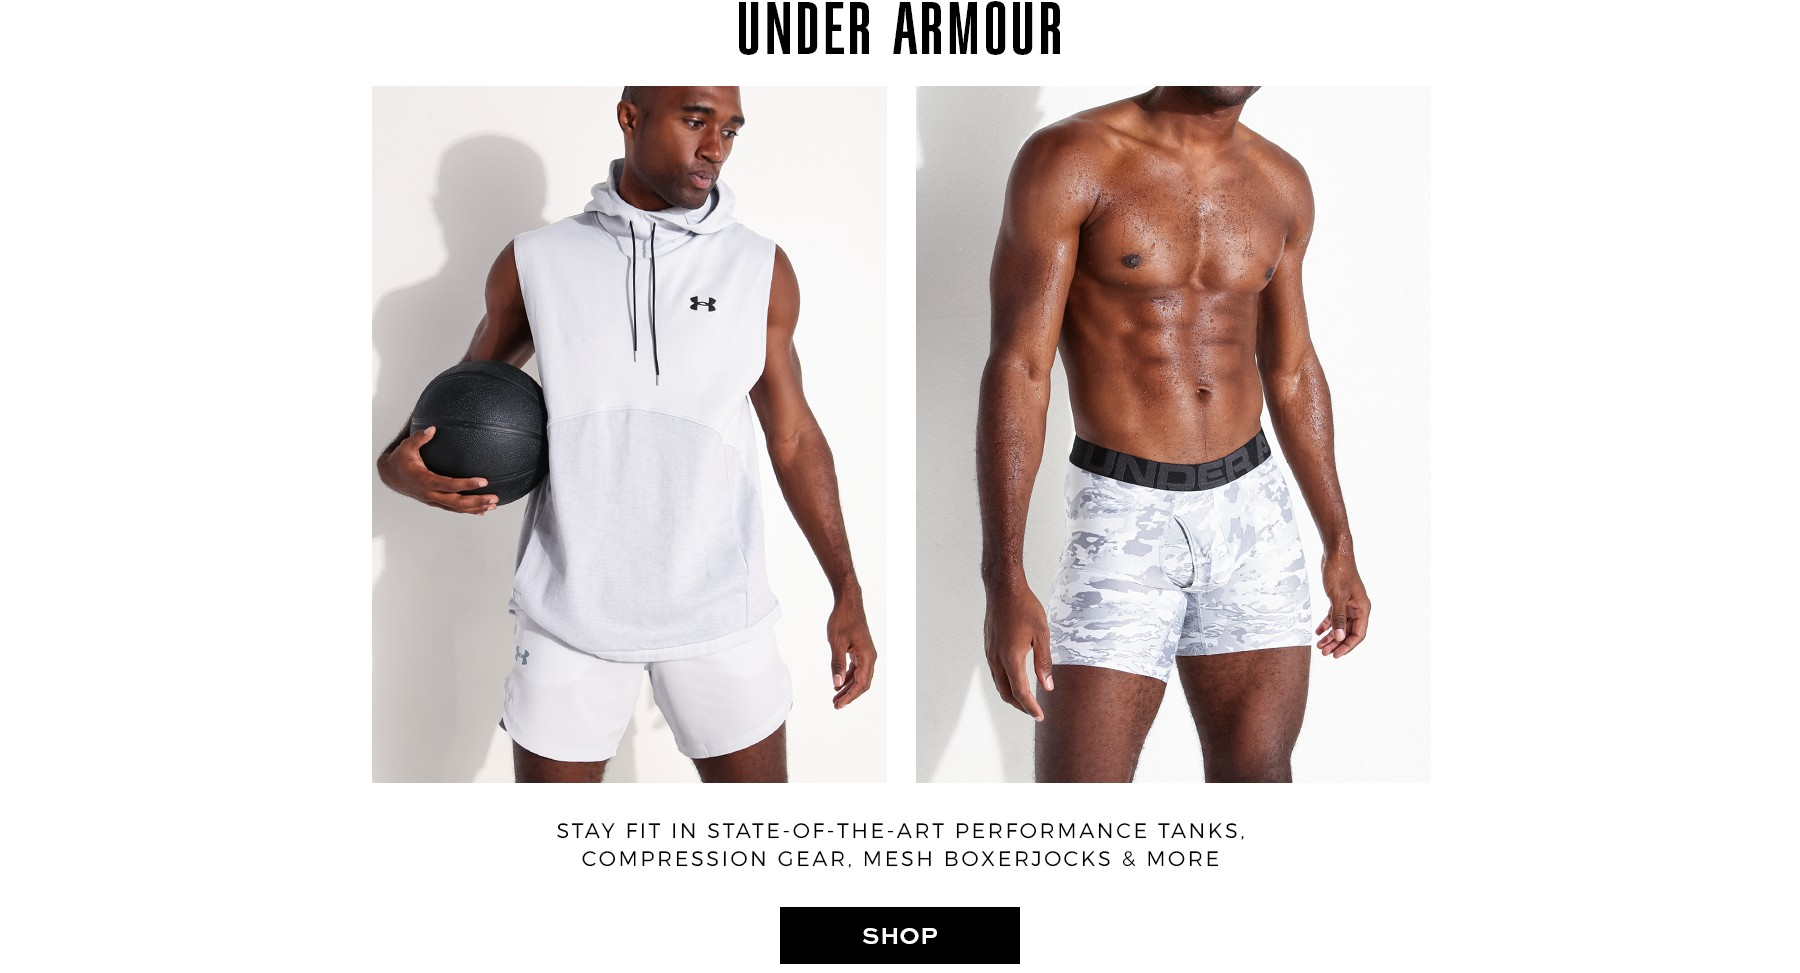 State of the art activewear, tank tops, and boxer jocks